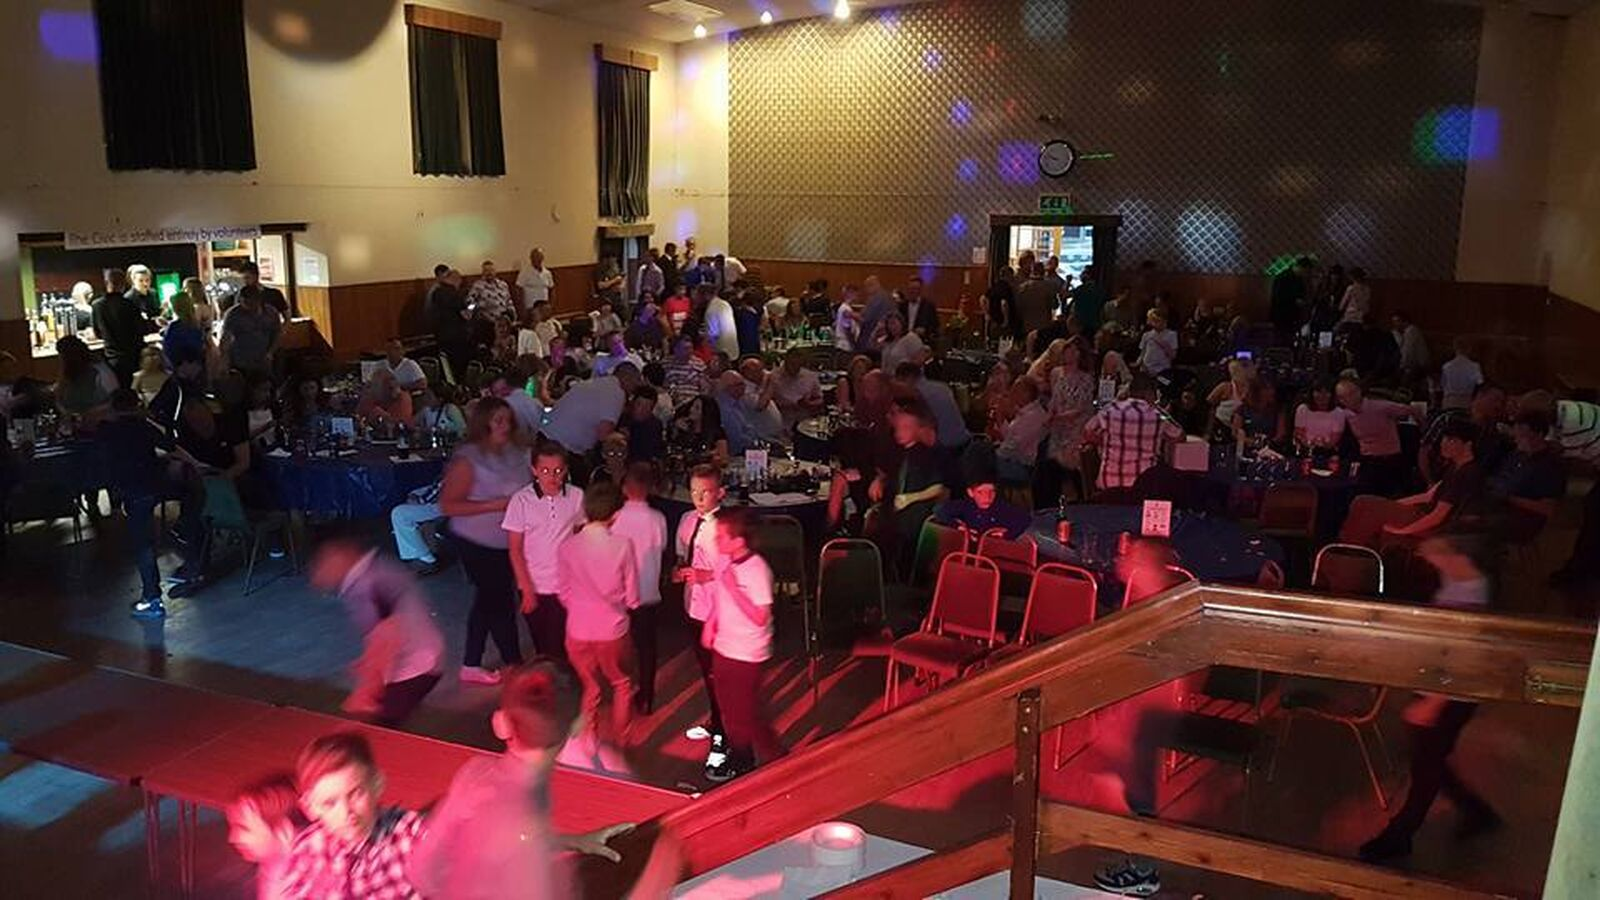 Ormskirk FC 2016/17 Awards Presentations a Massive Success